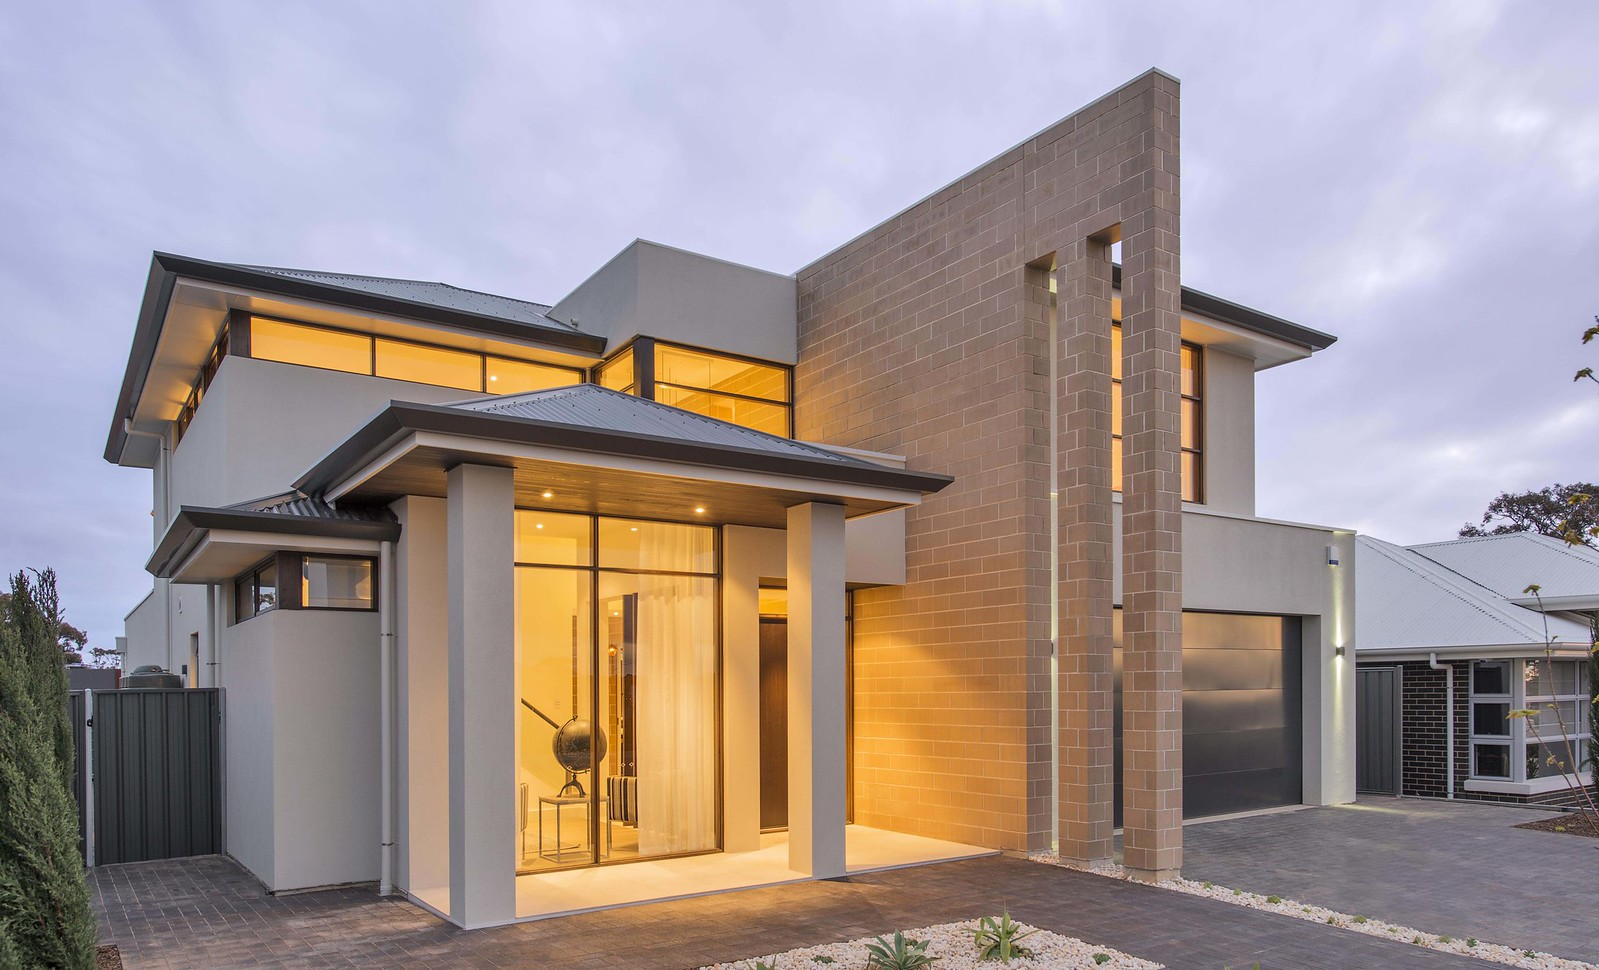 The wall austral bricks blocks and pavers designplace for Scott salisbury home designs